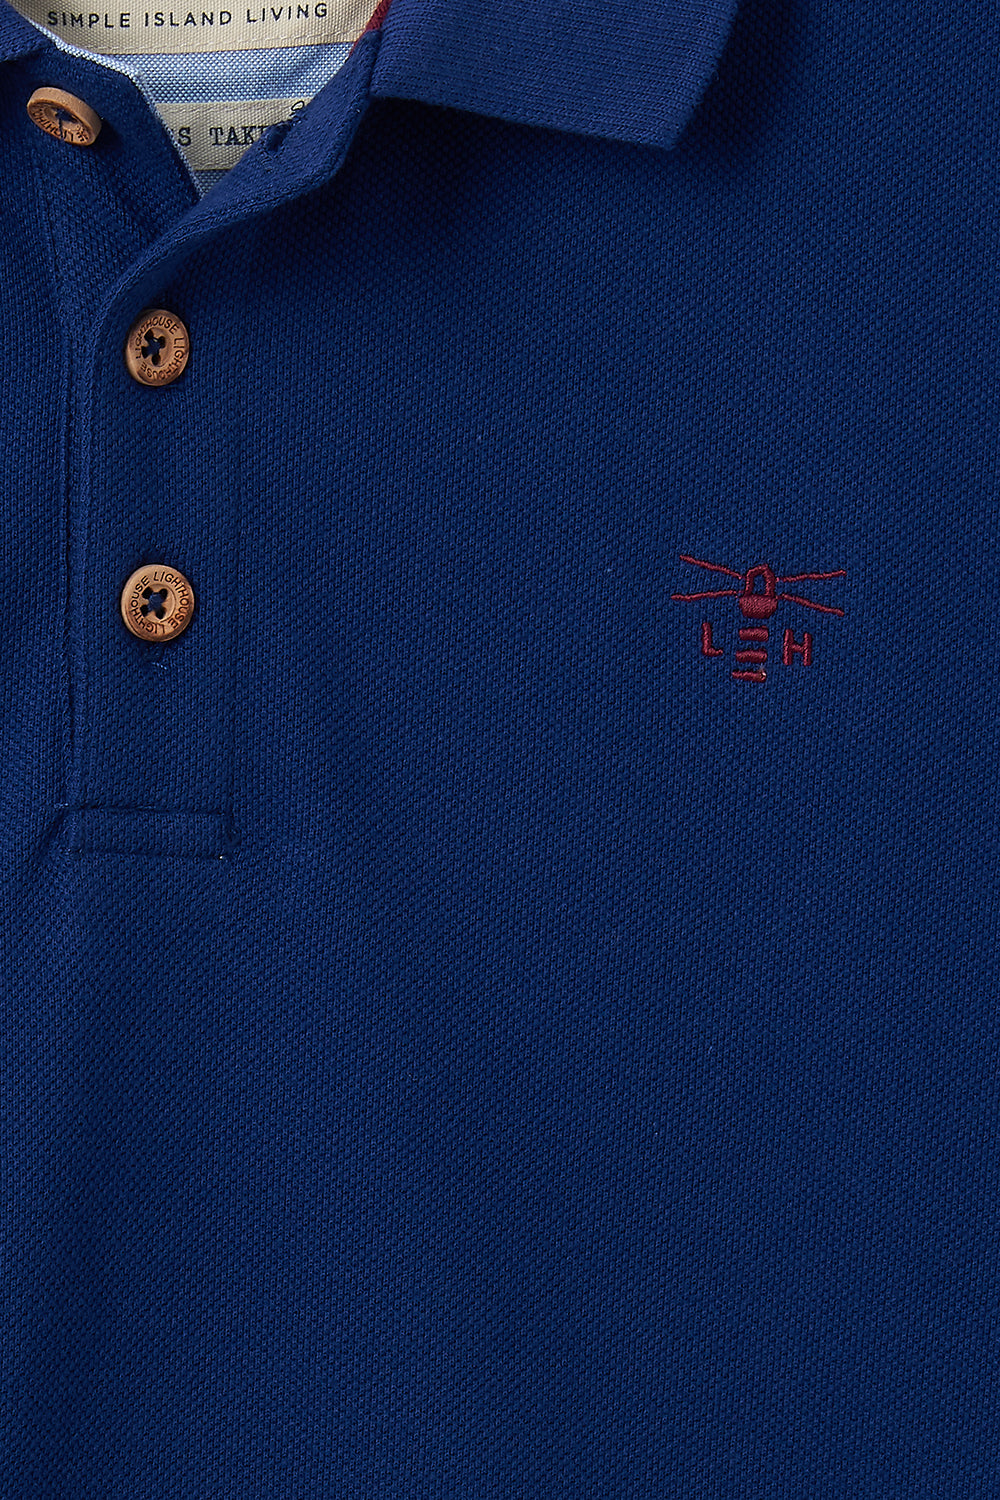 Pier Polo Shirt - Indigo Blue